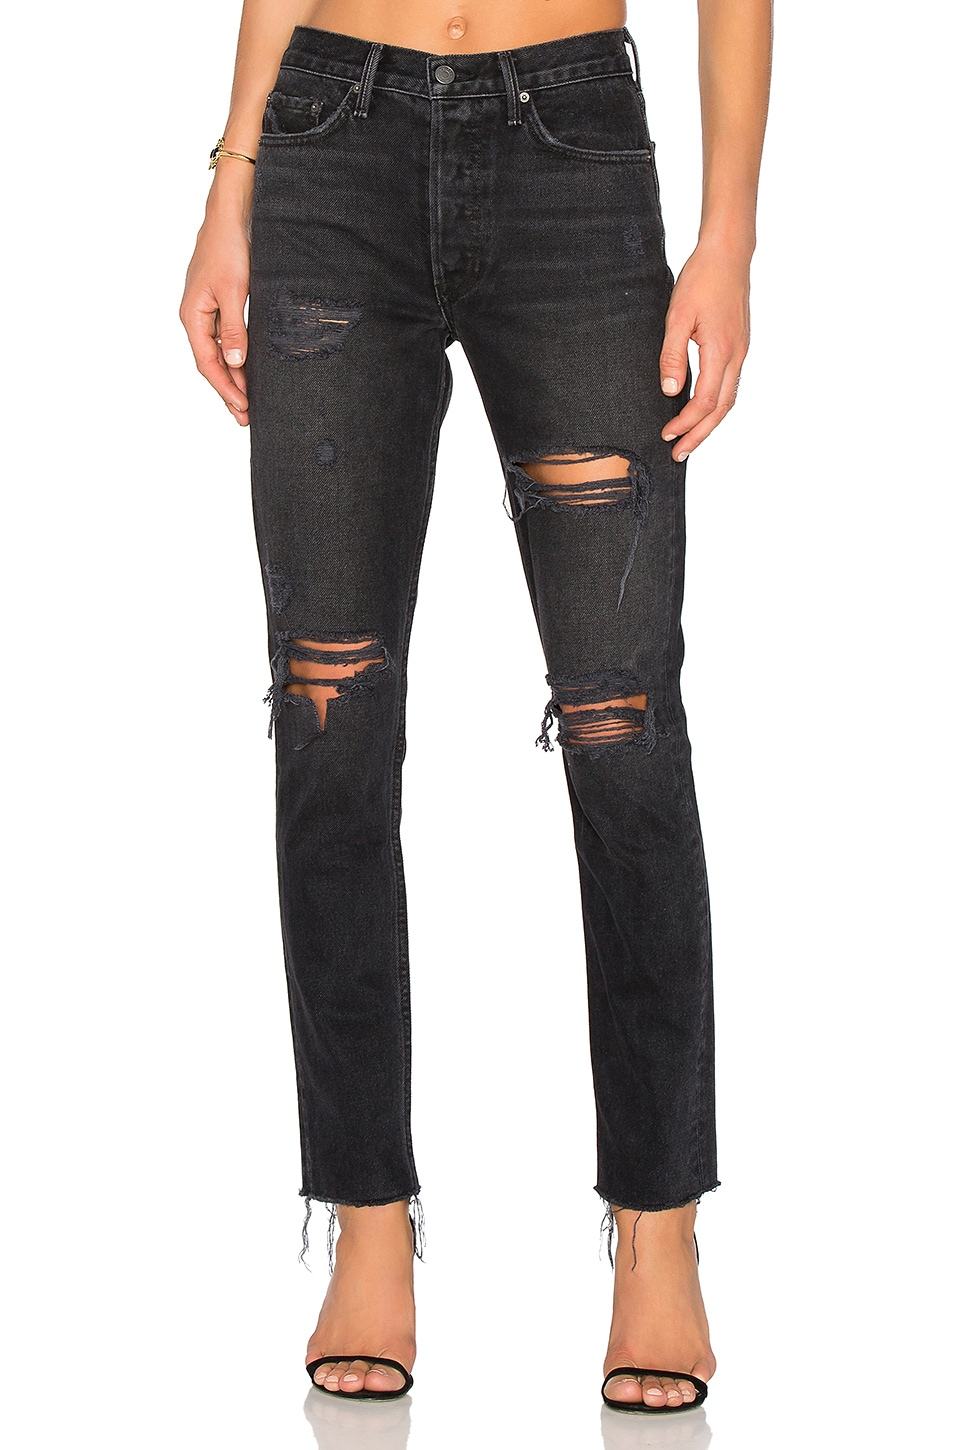 GRLFRND Karolina High-Rise Skinny Jean with Butt Slit in Travelin' Band